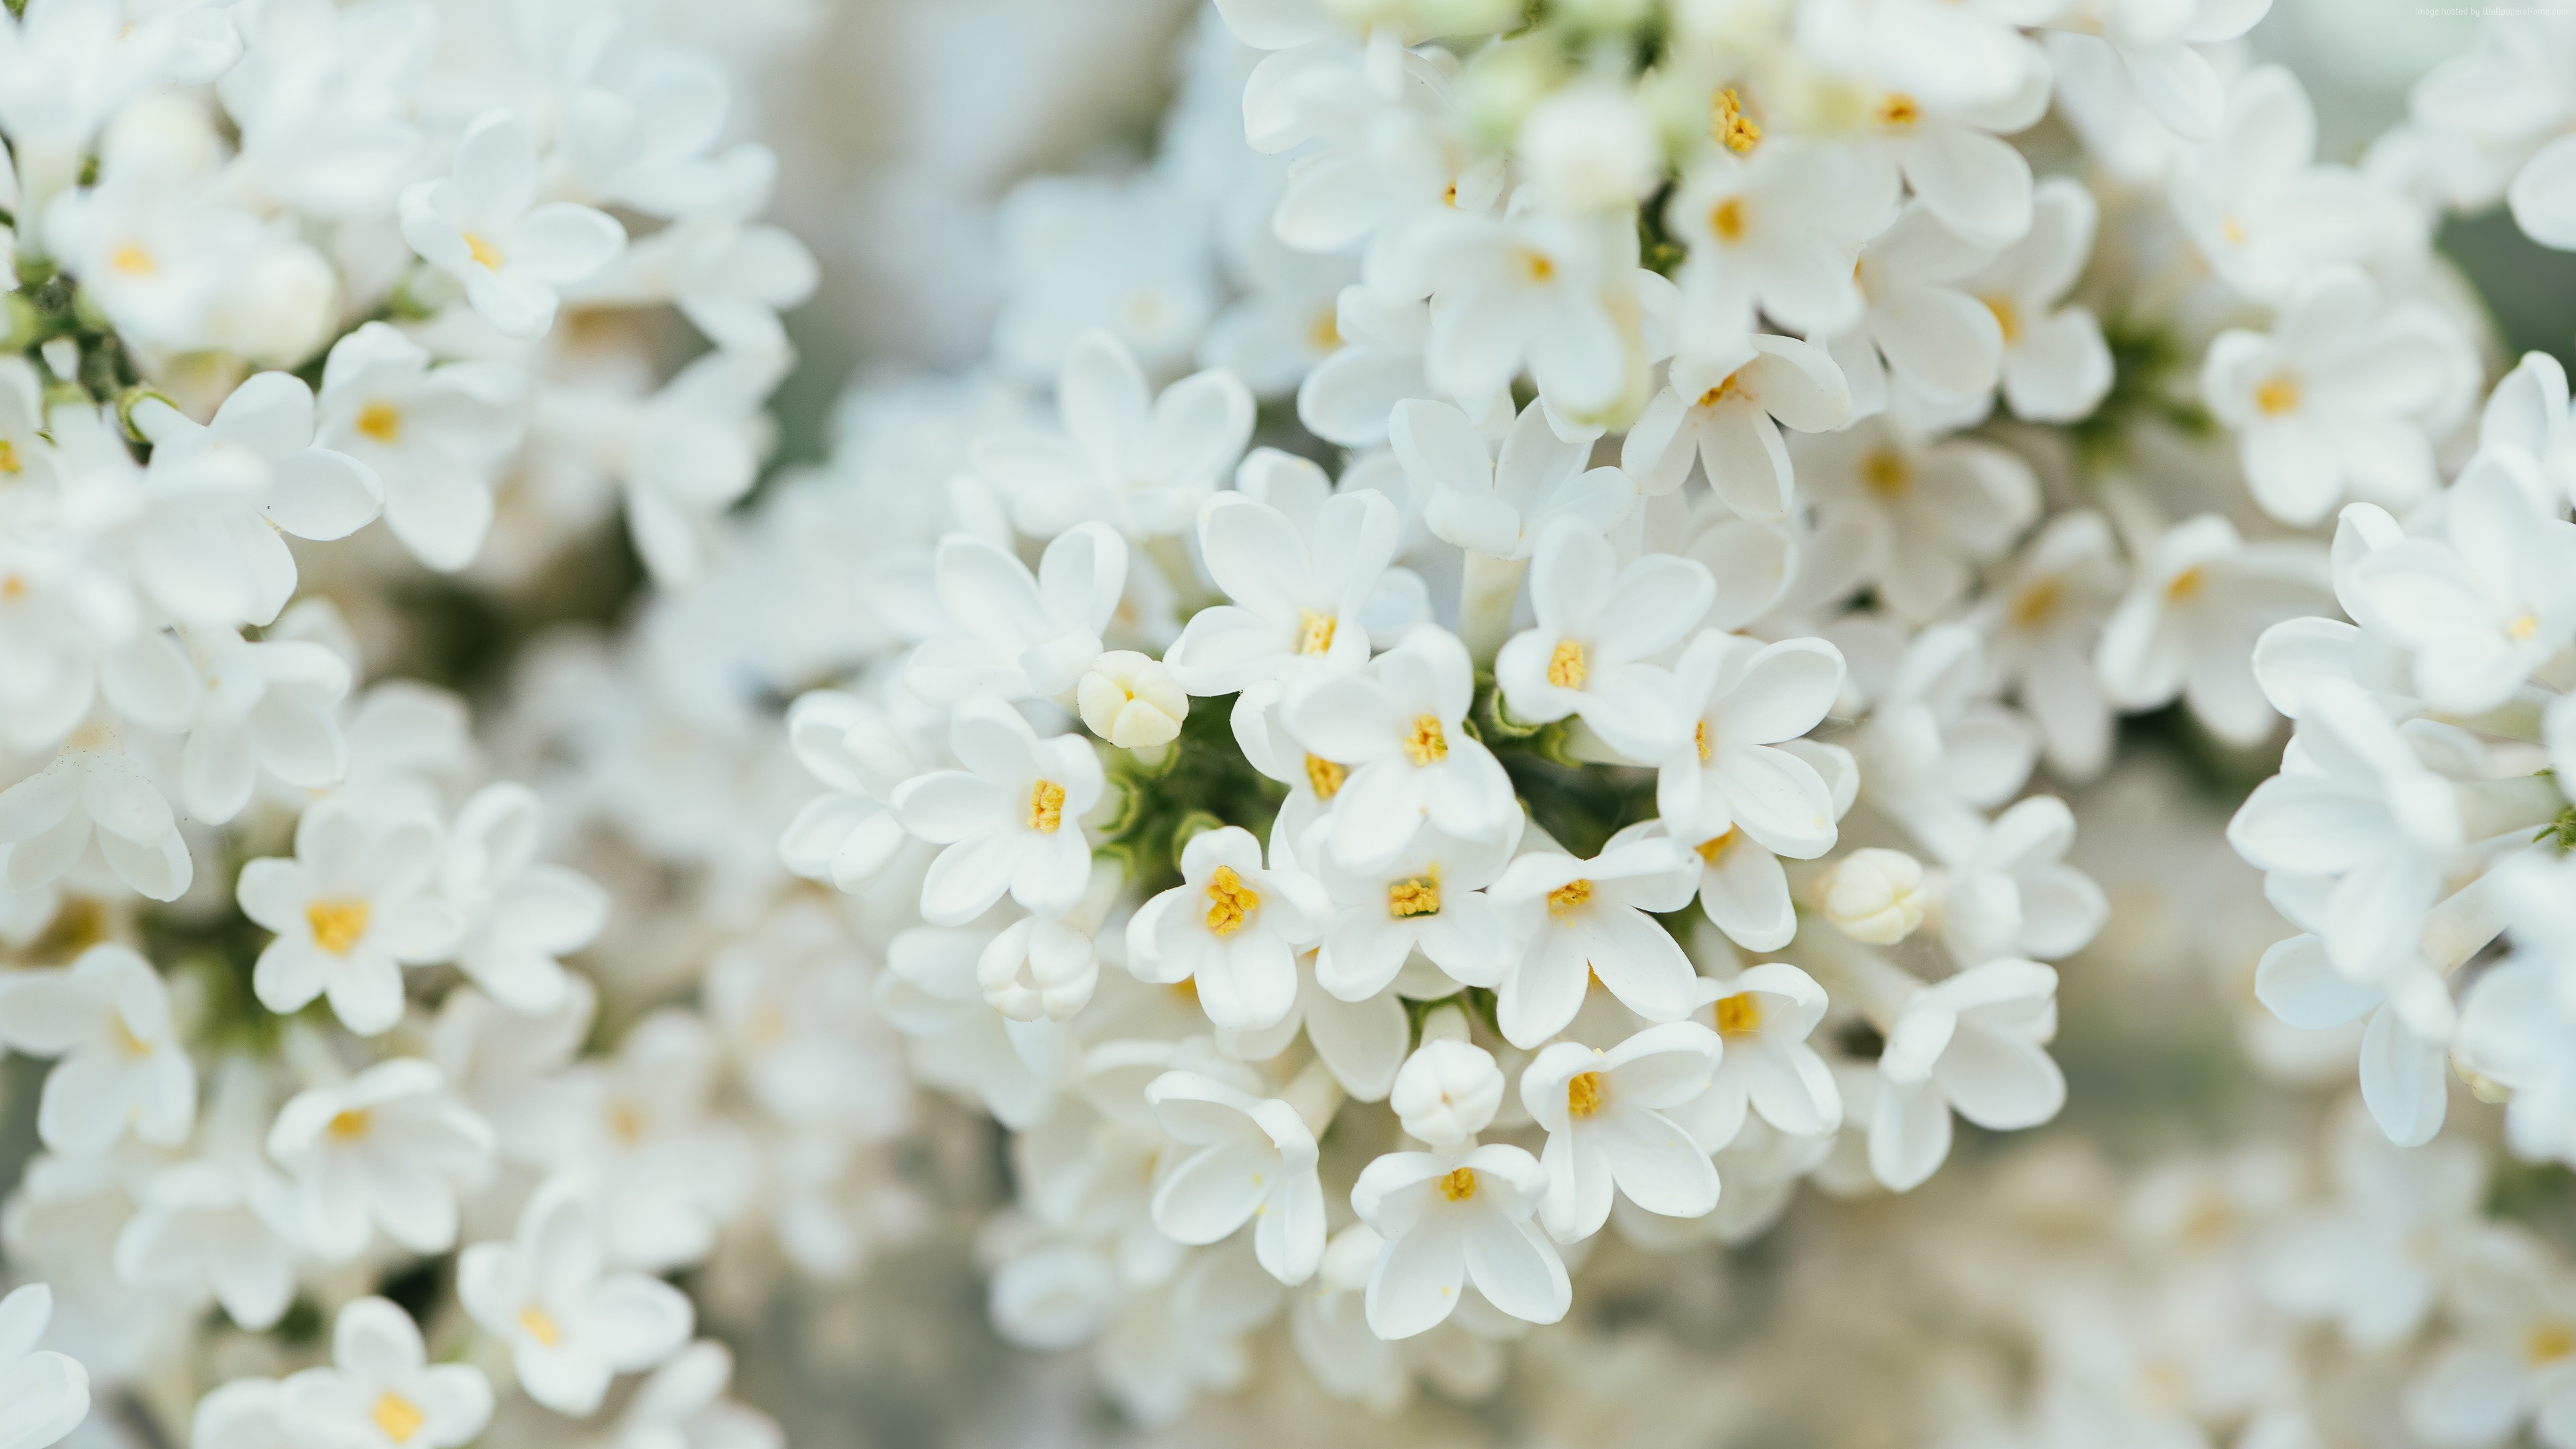 Wallpaper white flower spring 4k 7k nature 4k 7k spring white wallpaper white flower spring 4k 7k nature 4k 7k spring white flower wallpaper download high resolution 4k wallpaper mightylinksfo